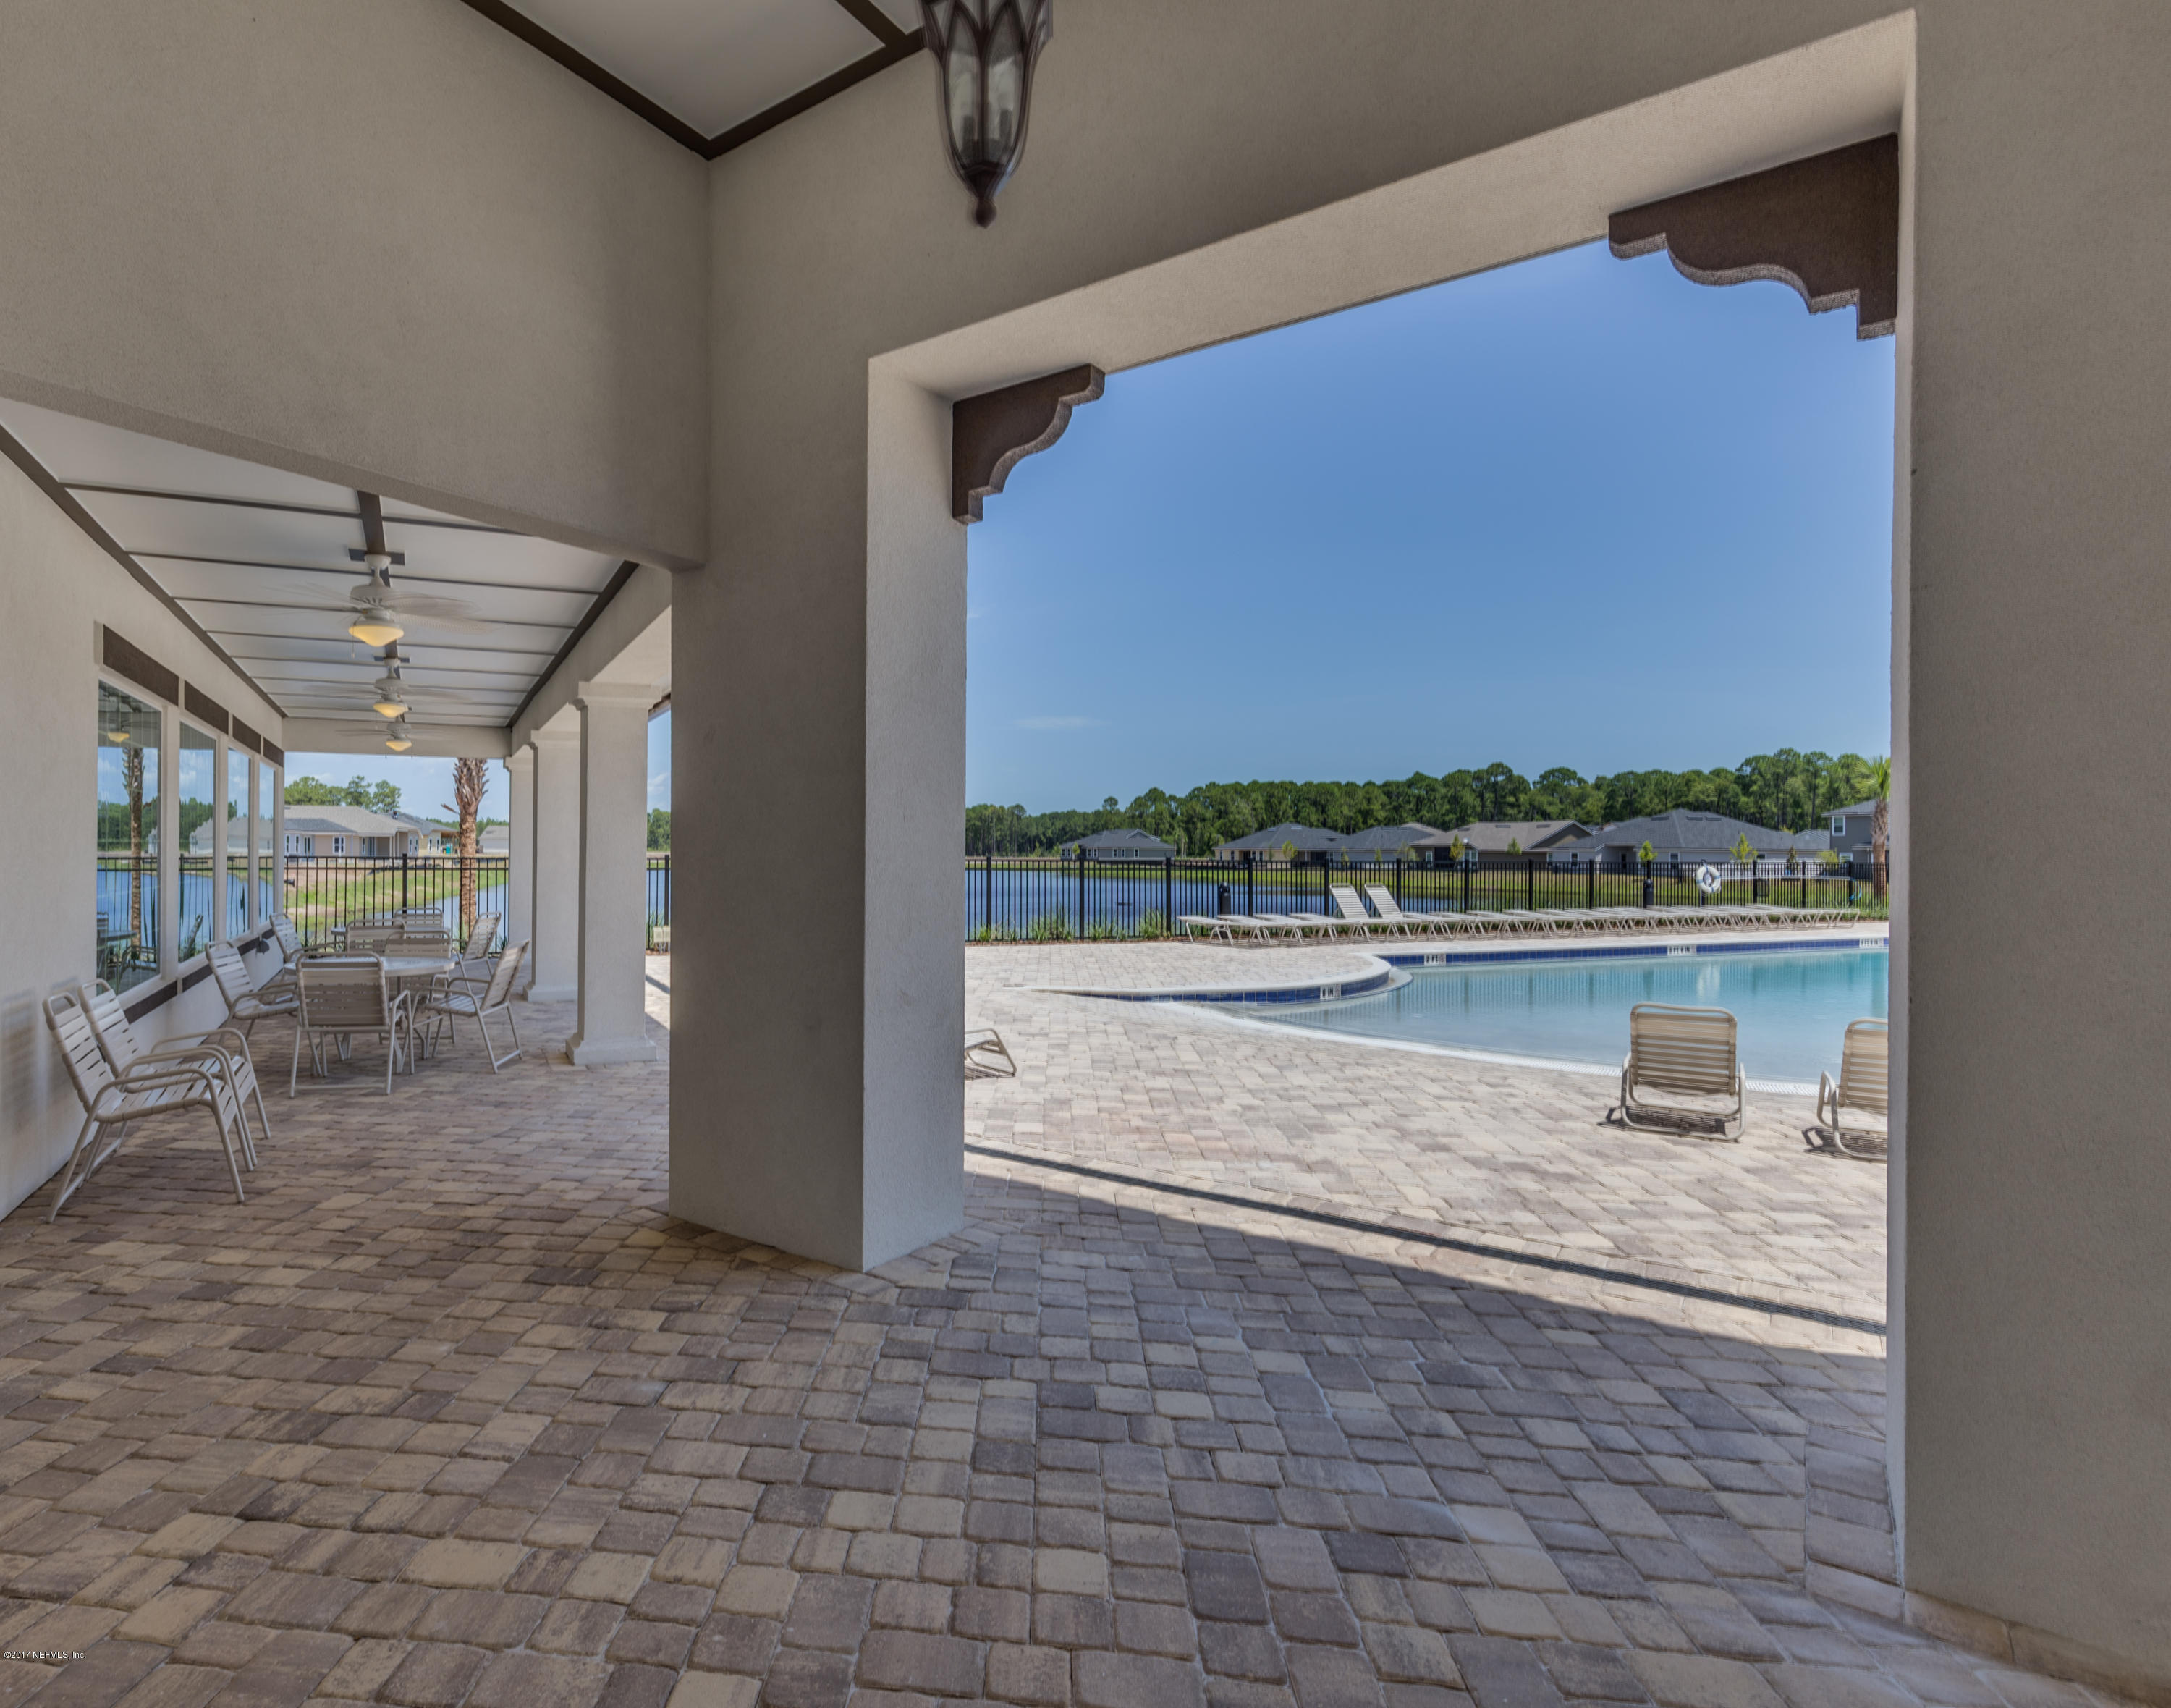 457 PALACE, ST AUGUSTINE, FLORIDA 32084, 4 Bedrooms Bedrooms, ,2 BathroomsBathrooms,Residential,For sale,PALACE,1059759